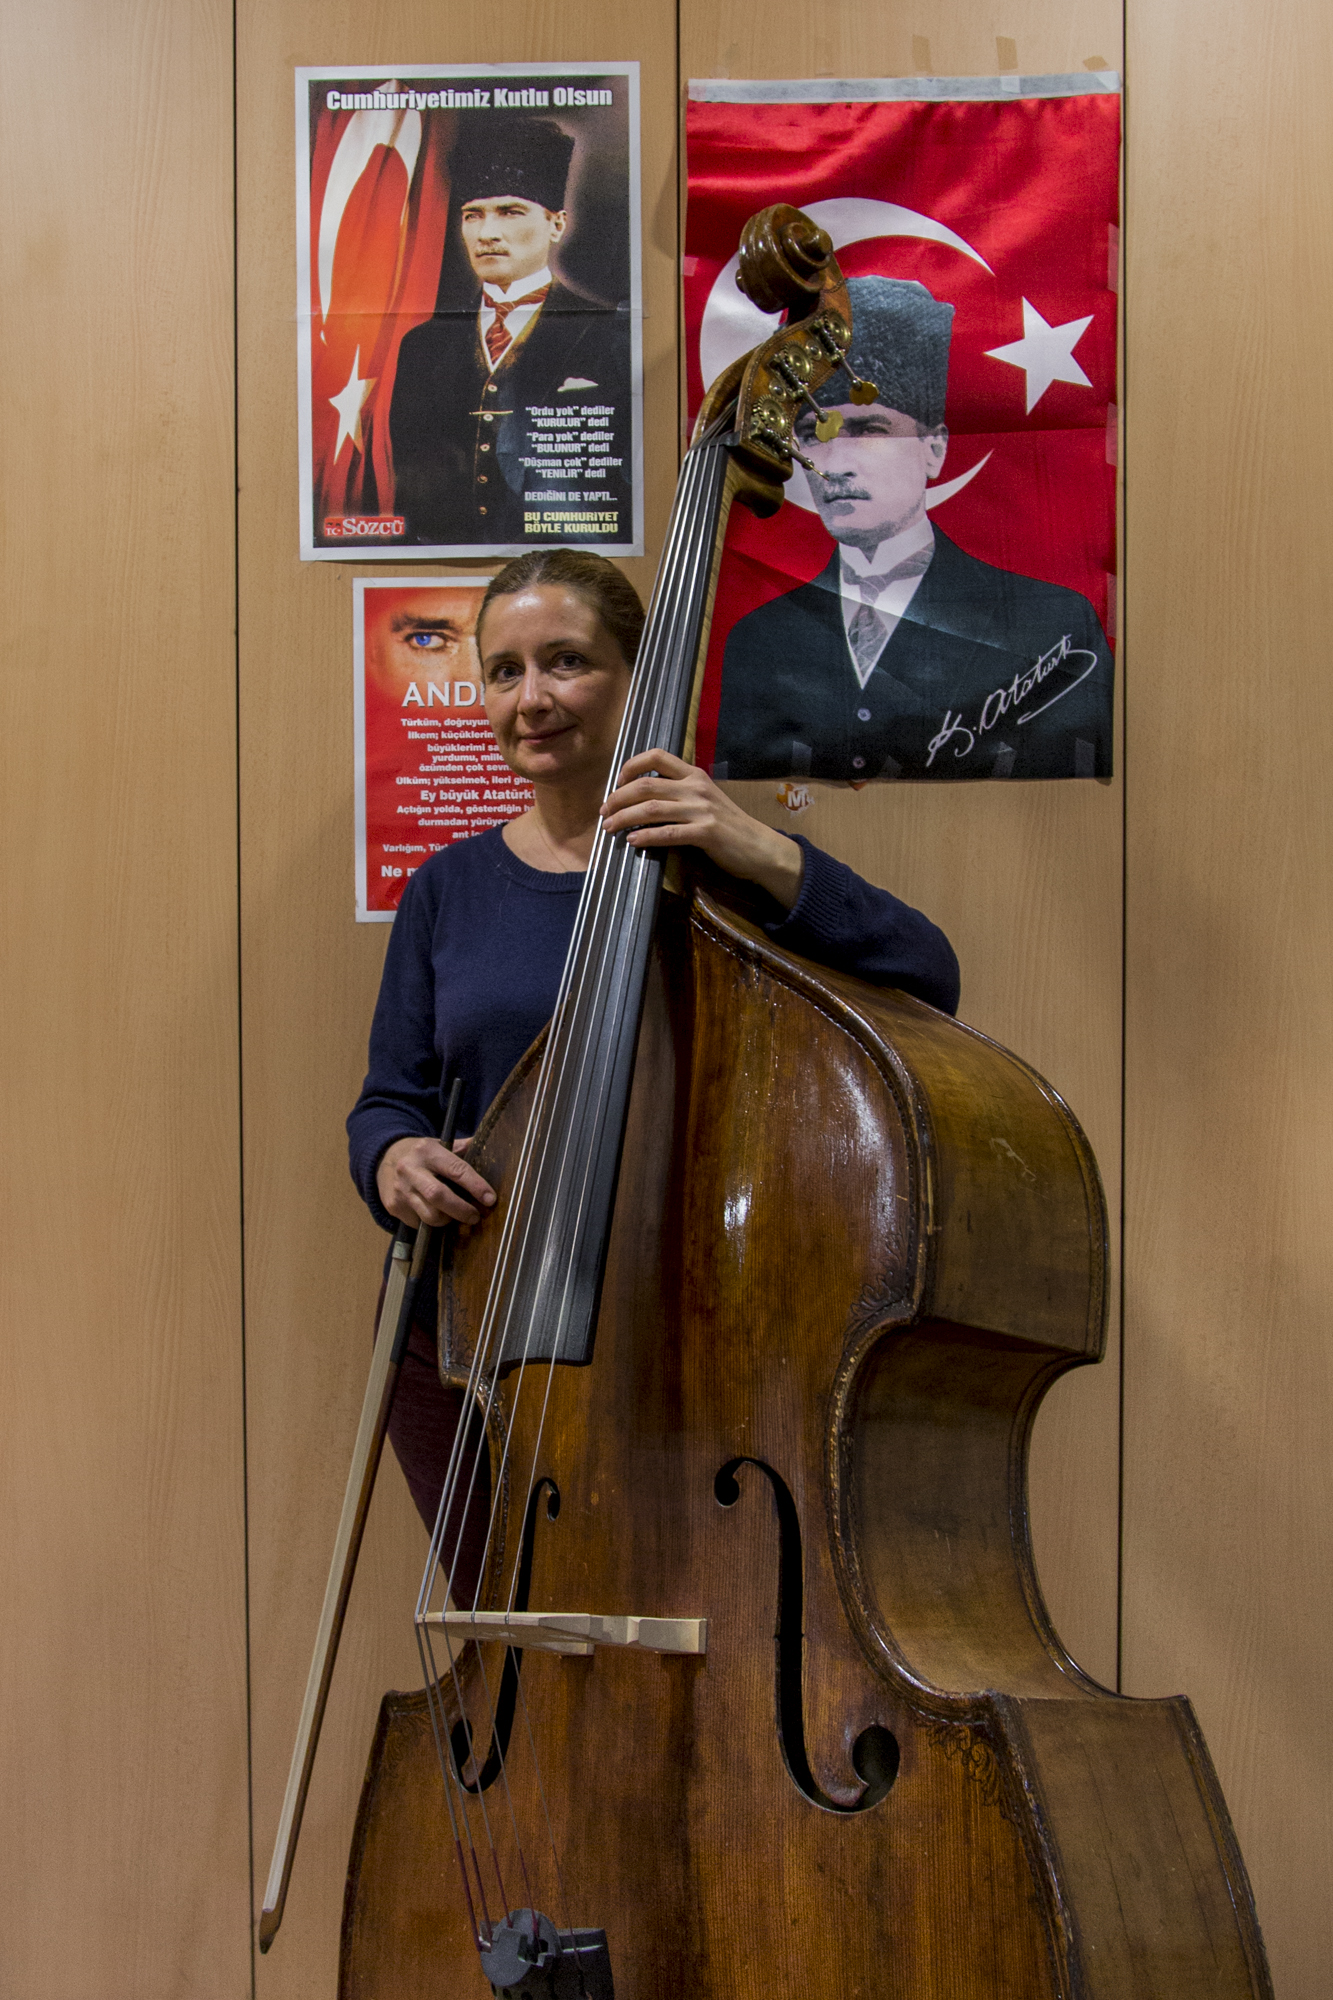 Aylin, a bassist poses in front of her locker decorated with many posters of Atatürk, the founder of the Republic of Turkey, during a break in rehearsals. Ankara, 18th of December 2014.